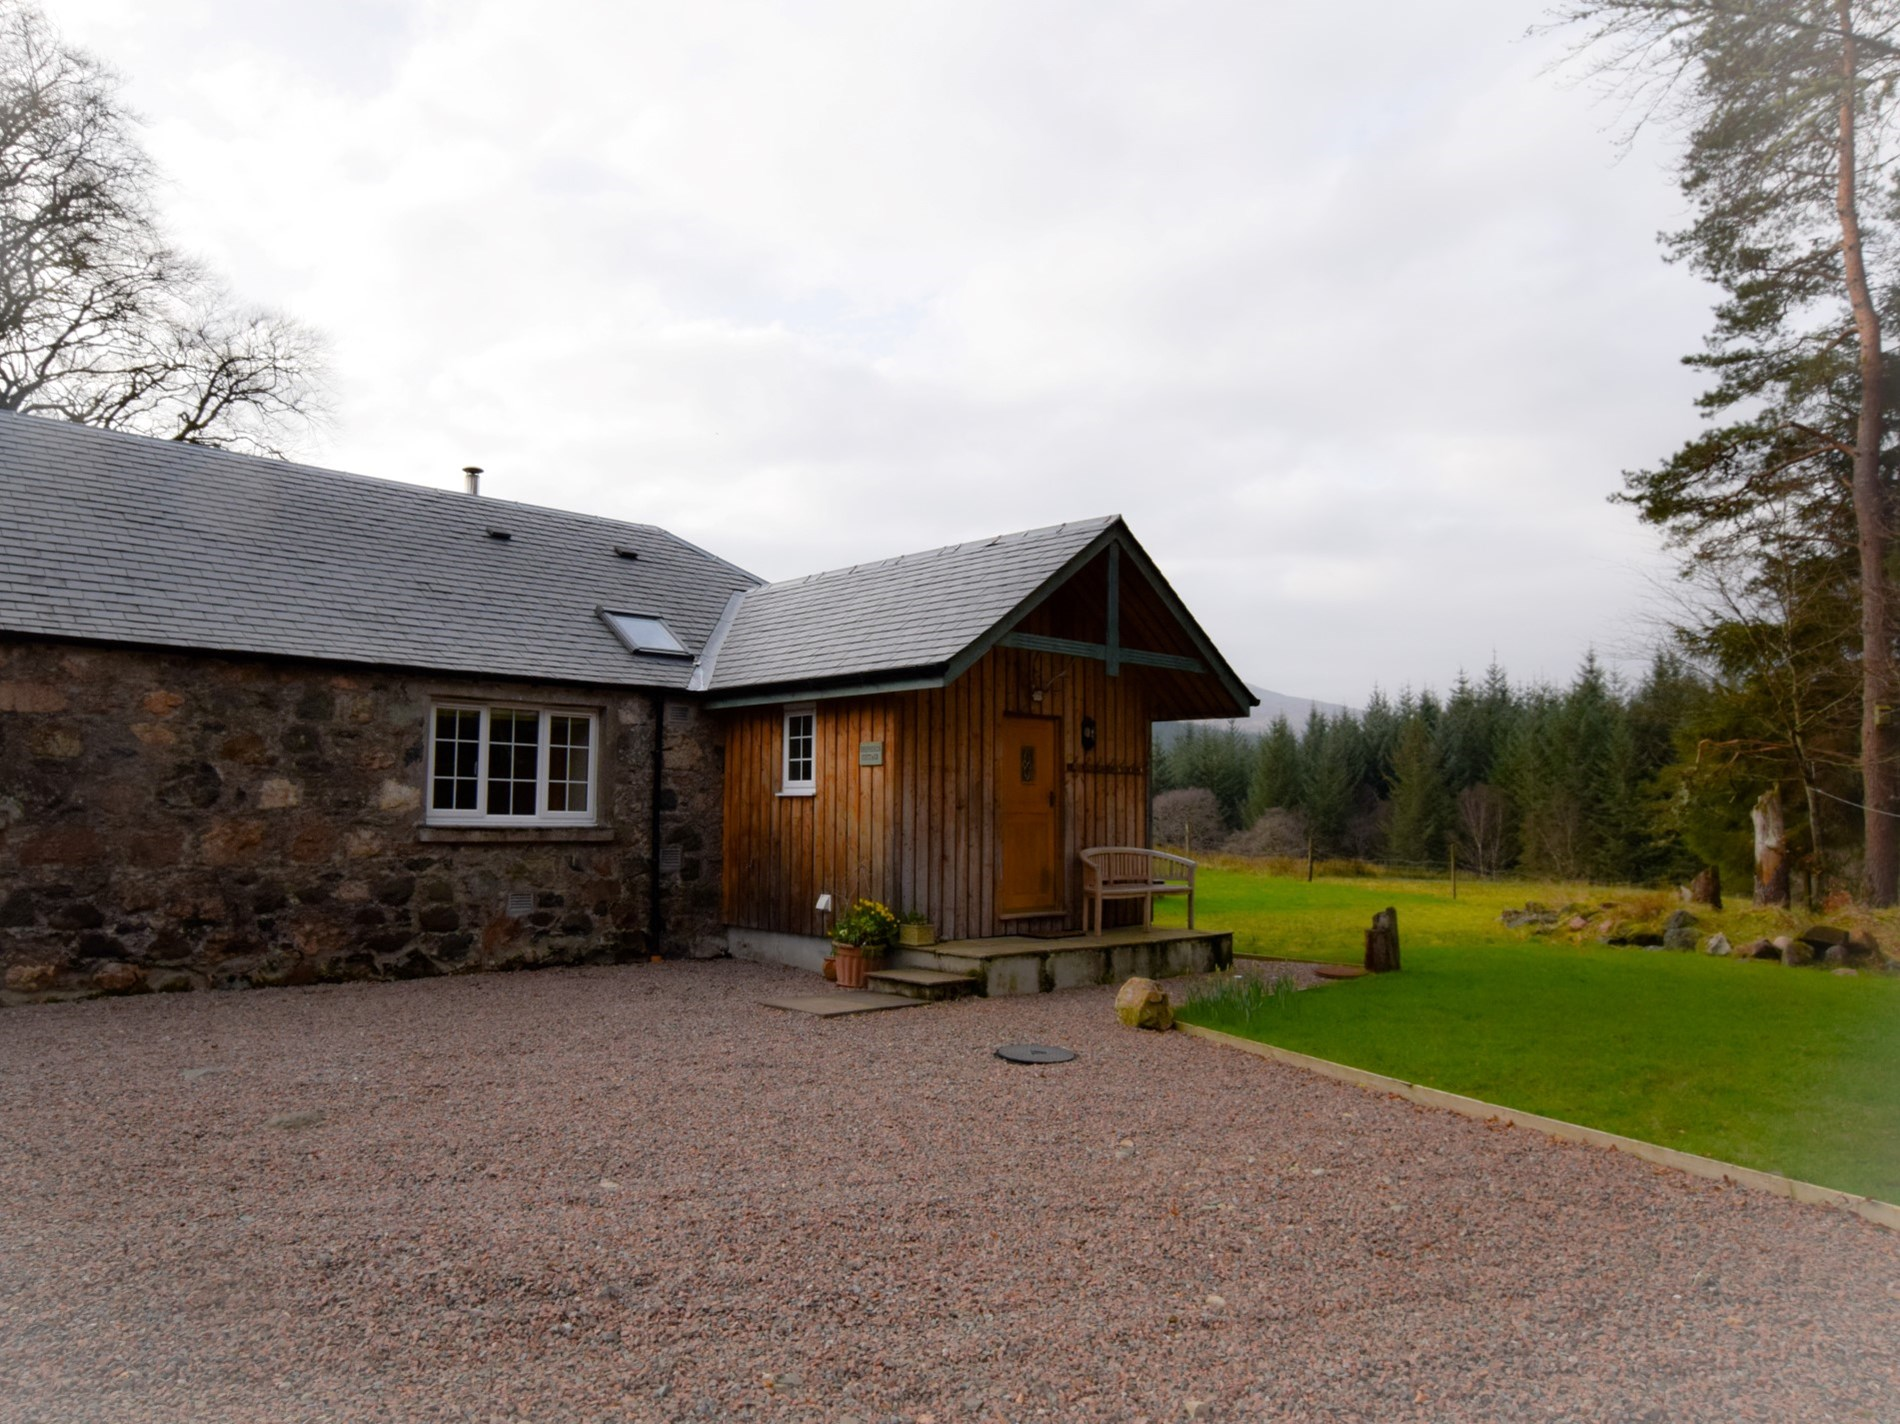 View to the property with ample parking